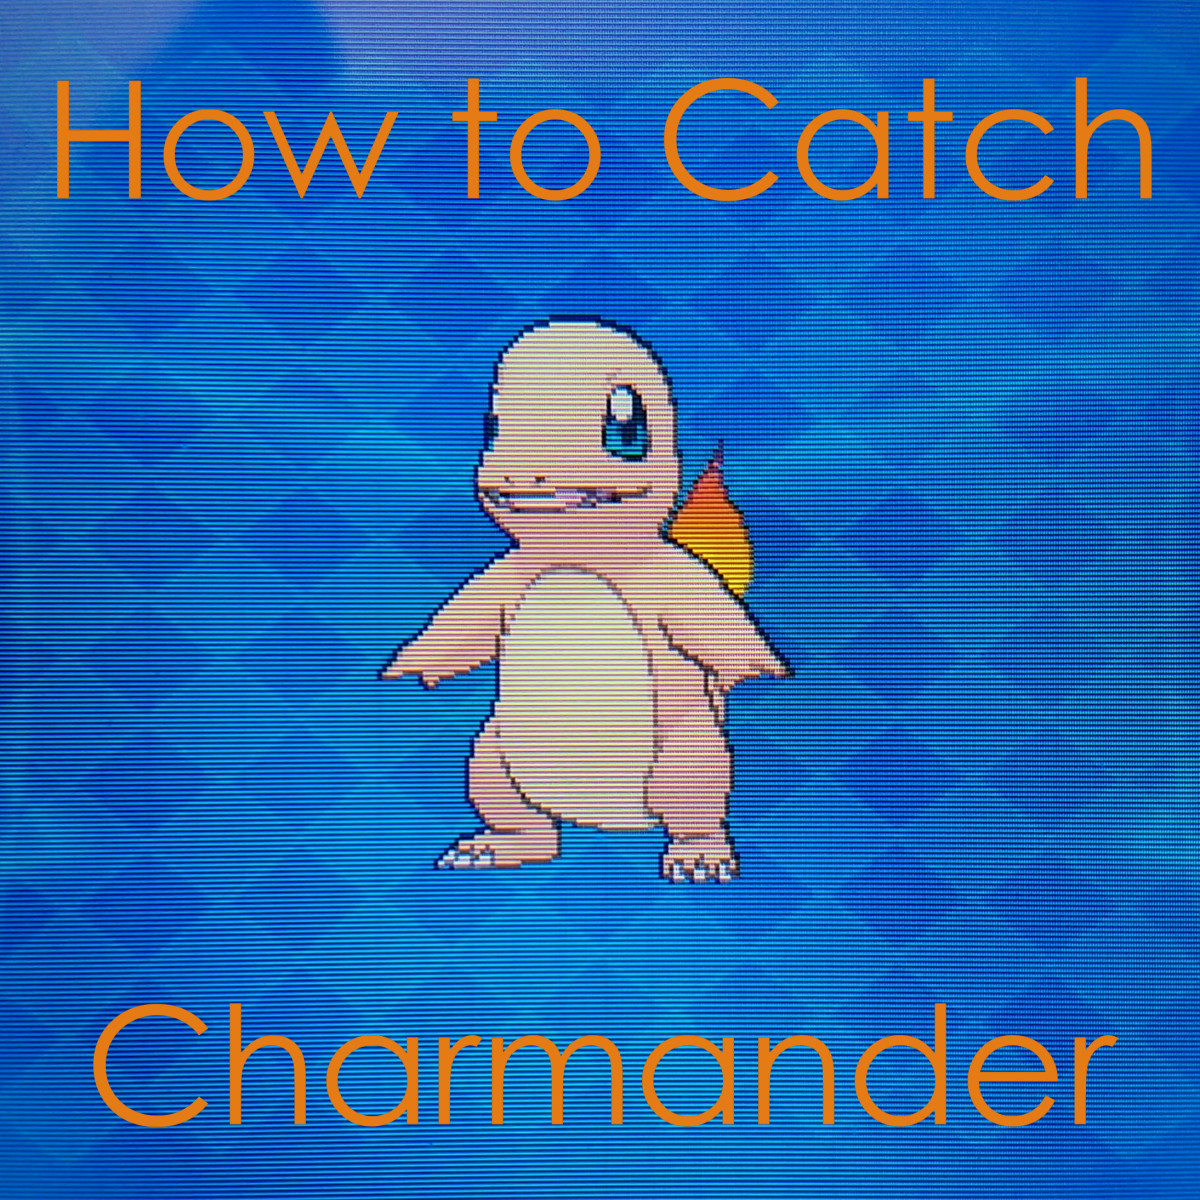 How to Get Charmander in the Pokémon Games